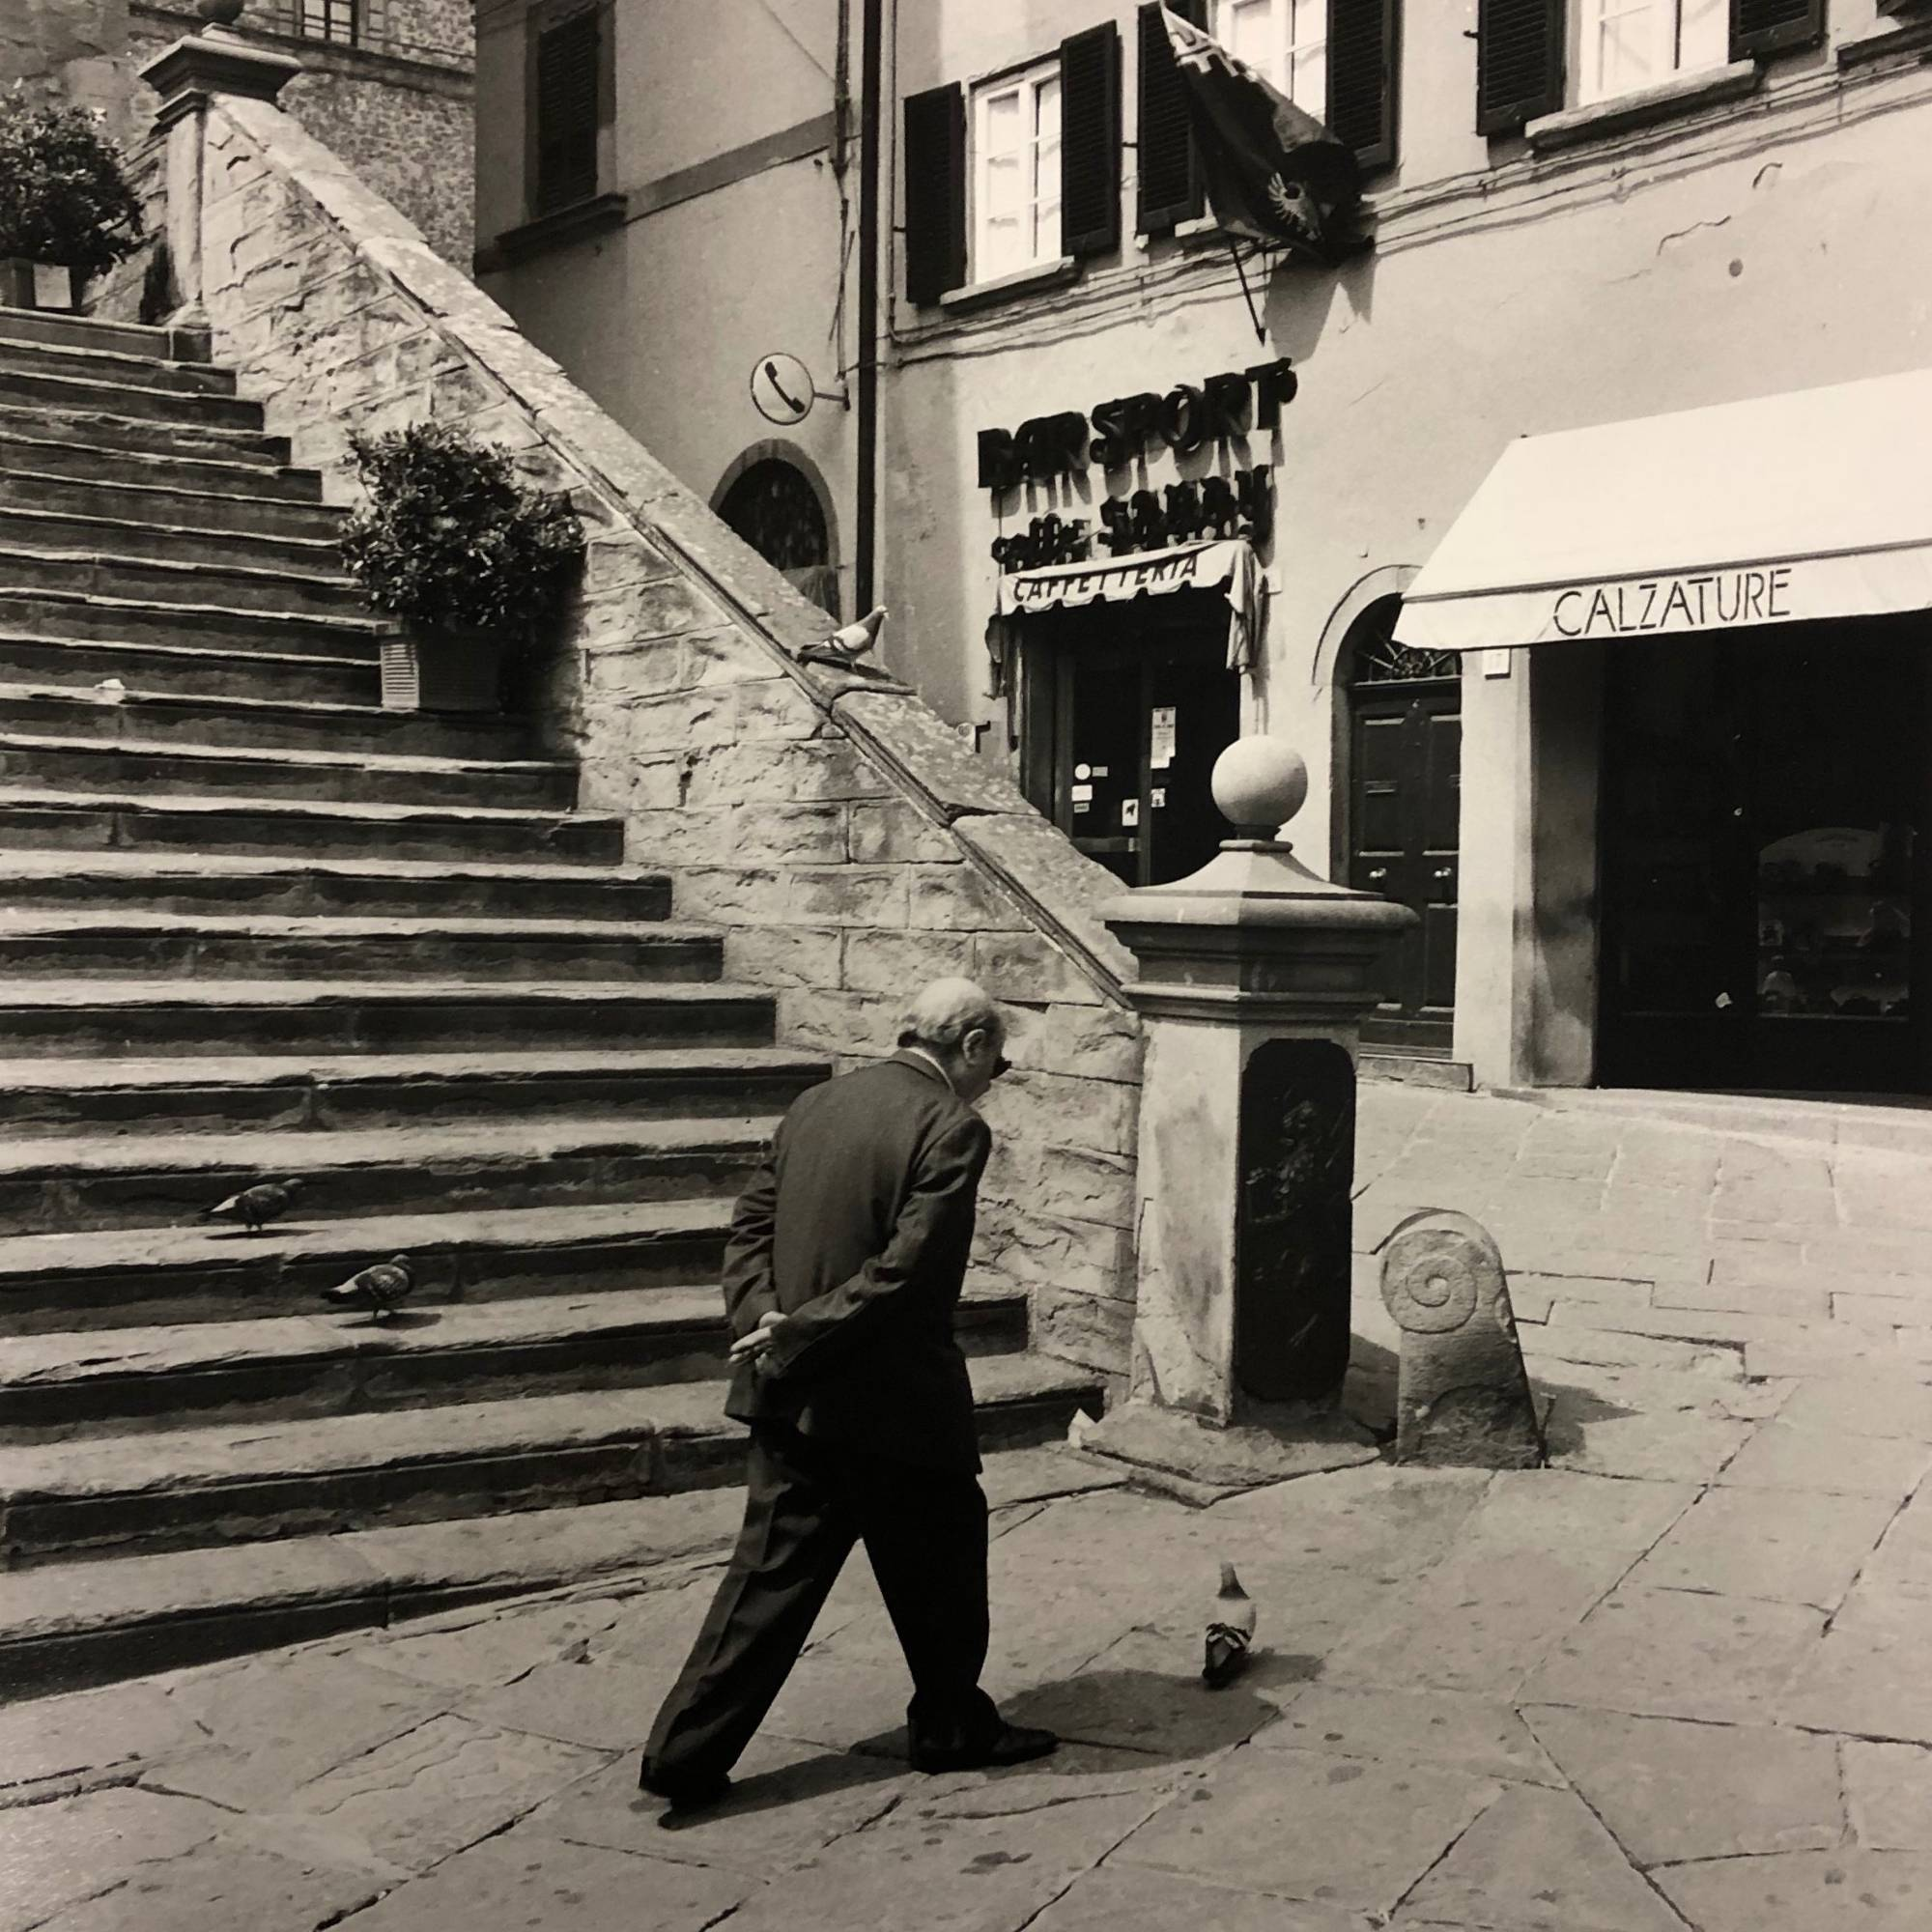 man walking on cobblestone street next to stone stairway with pigeon on ground next to him